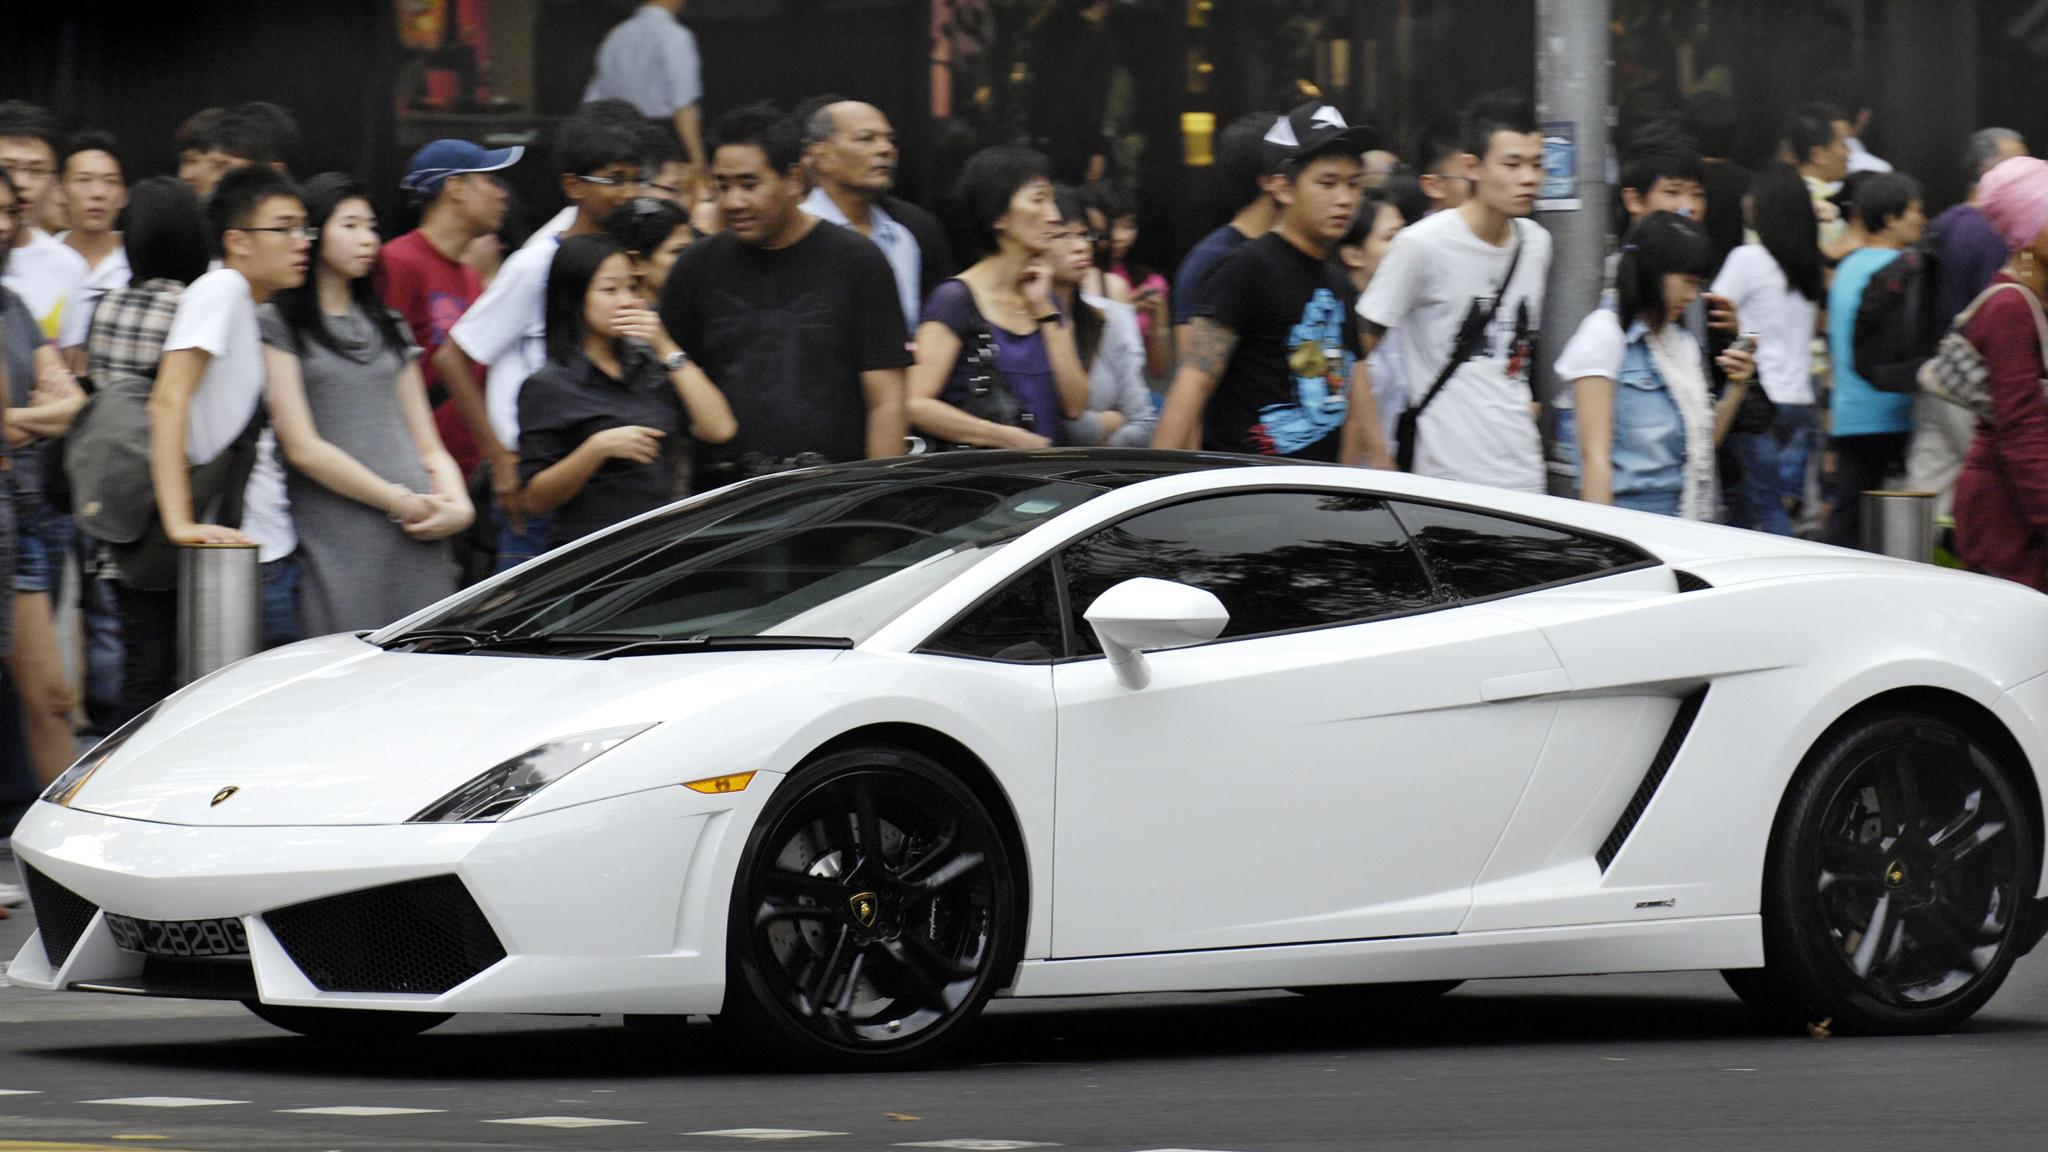 Singapore tax measures put brakes on supercar sales